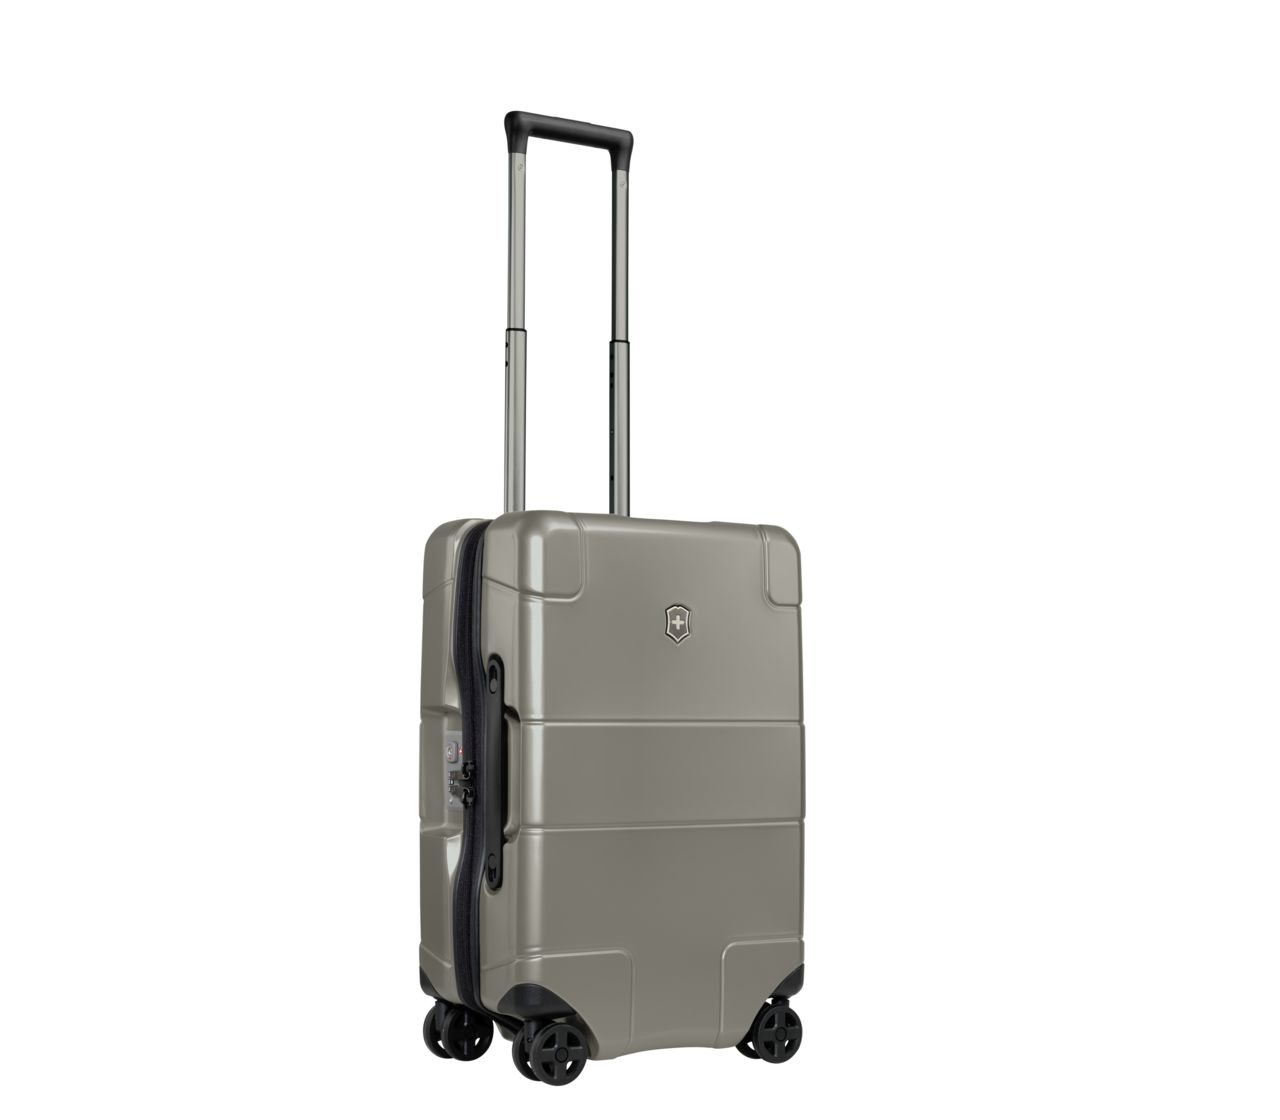 Lexicon Hardside Frequent Flyer Carry-On-602102